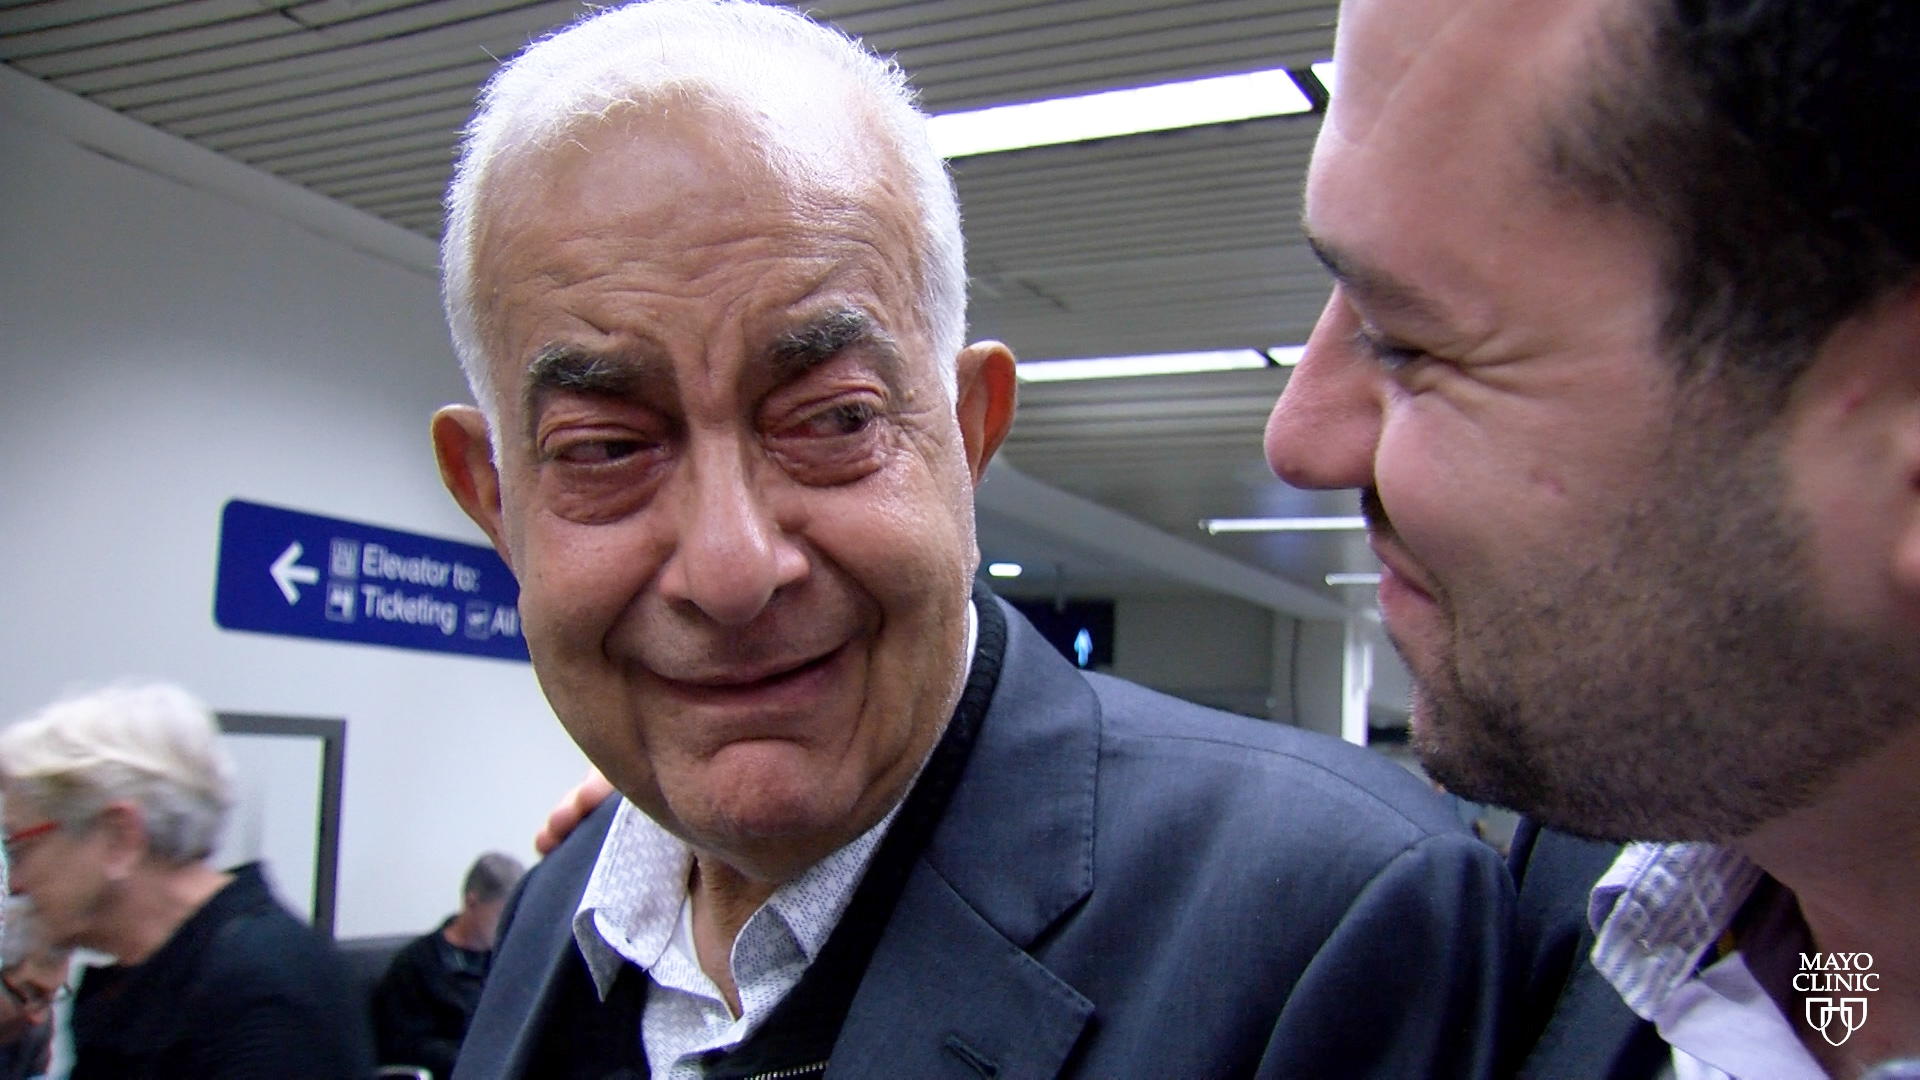 Dr. Fouad Chebib greeting his father at the airport